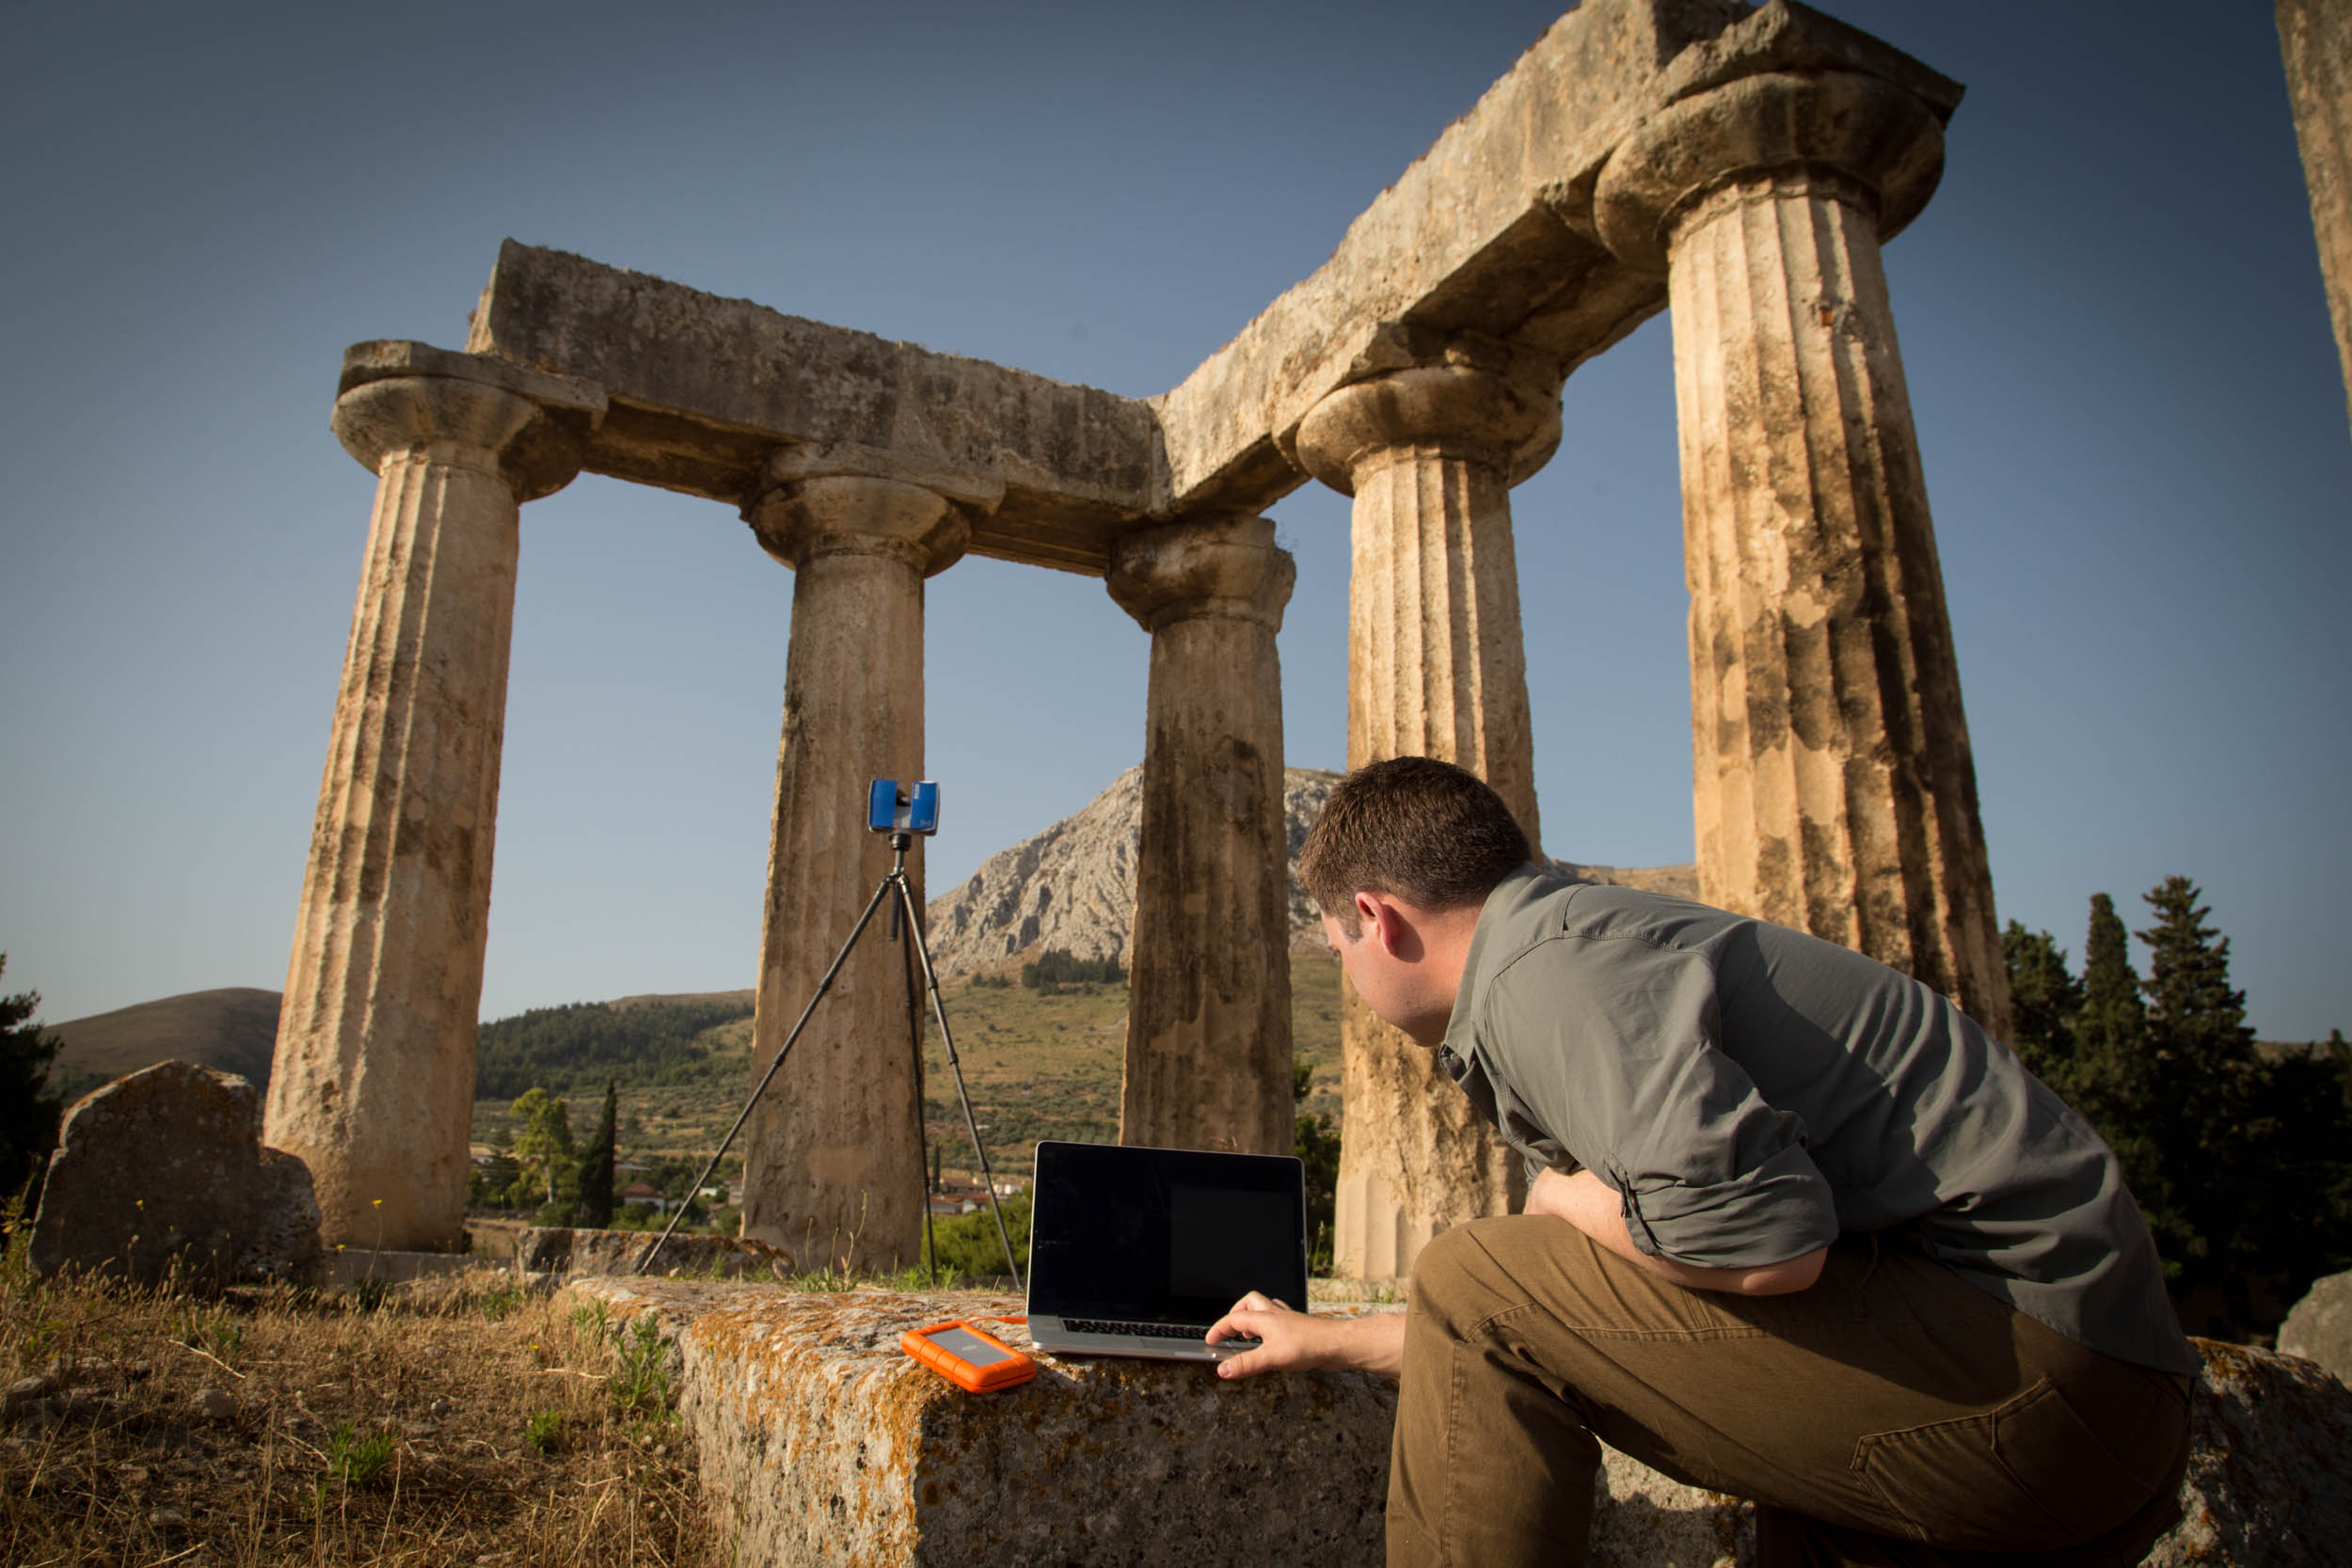 CyArk laser-scanning the Temple of Apollo at Ancient Corinth in Greece. Photo by CyArk